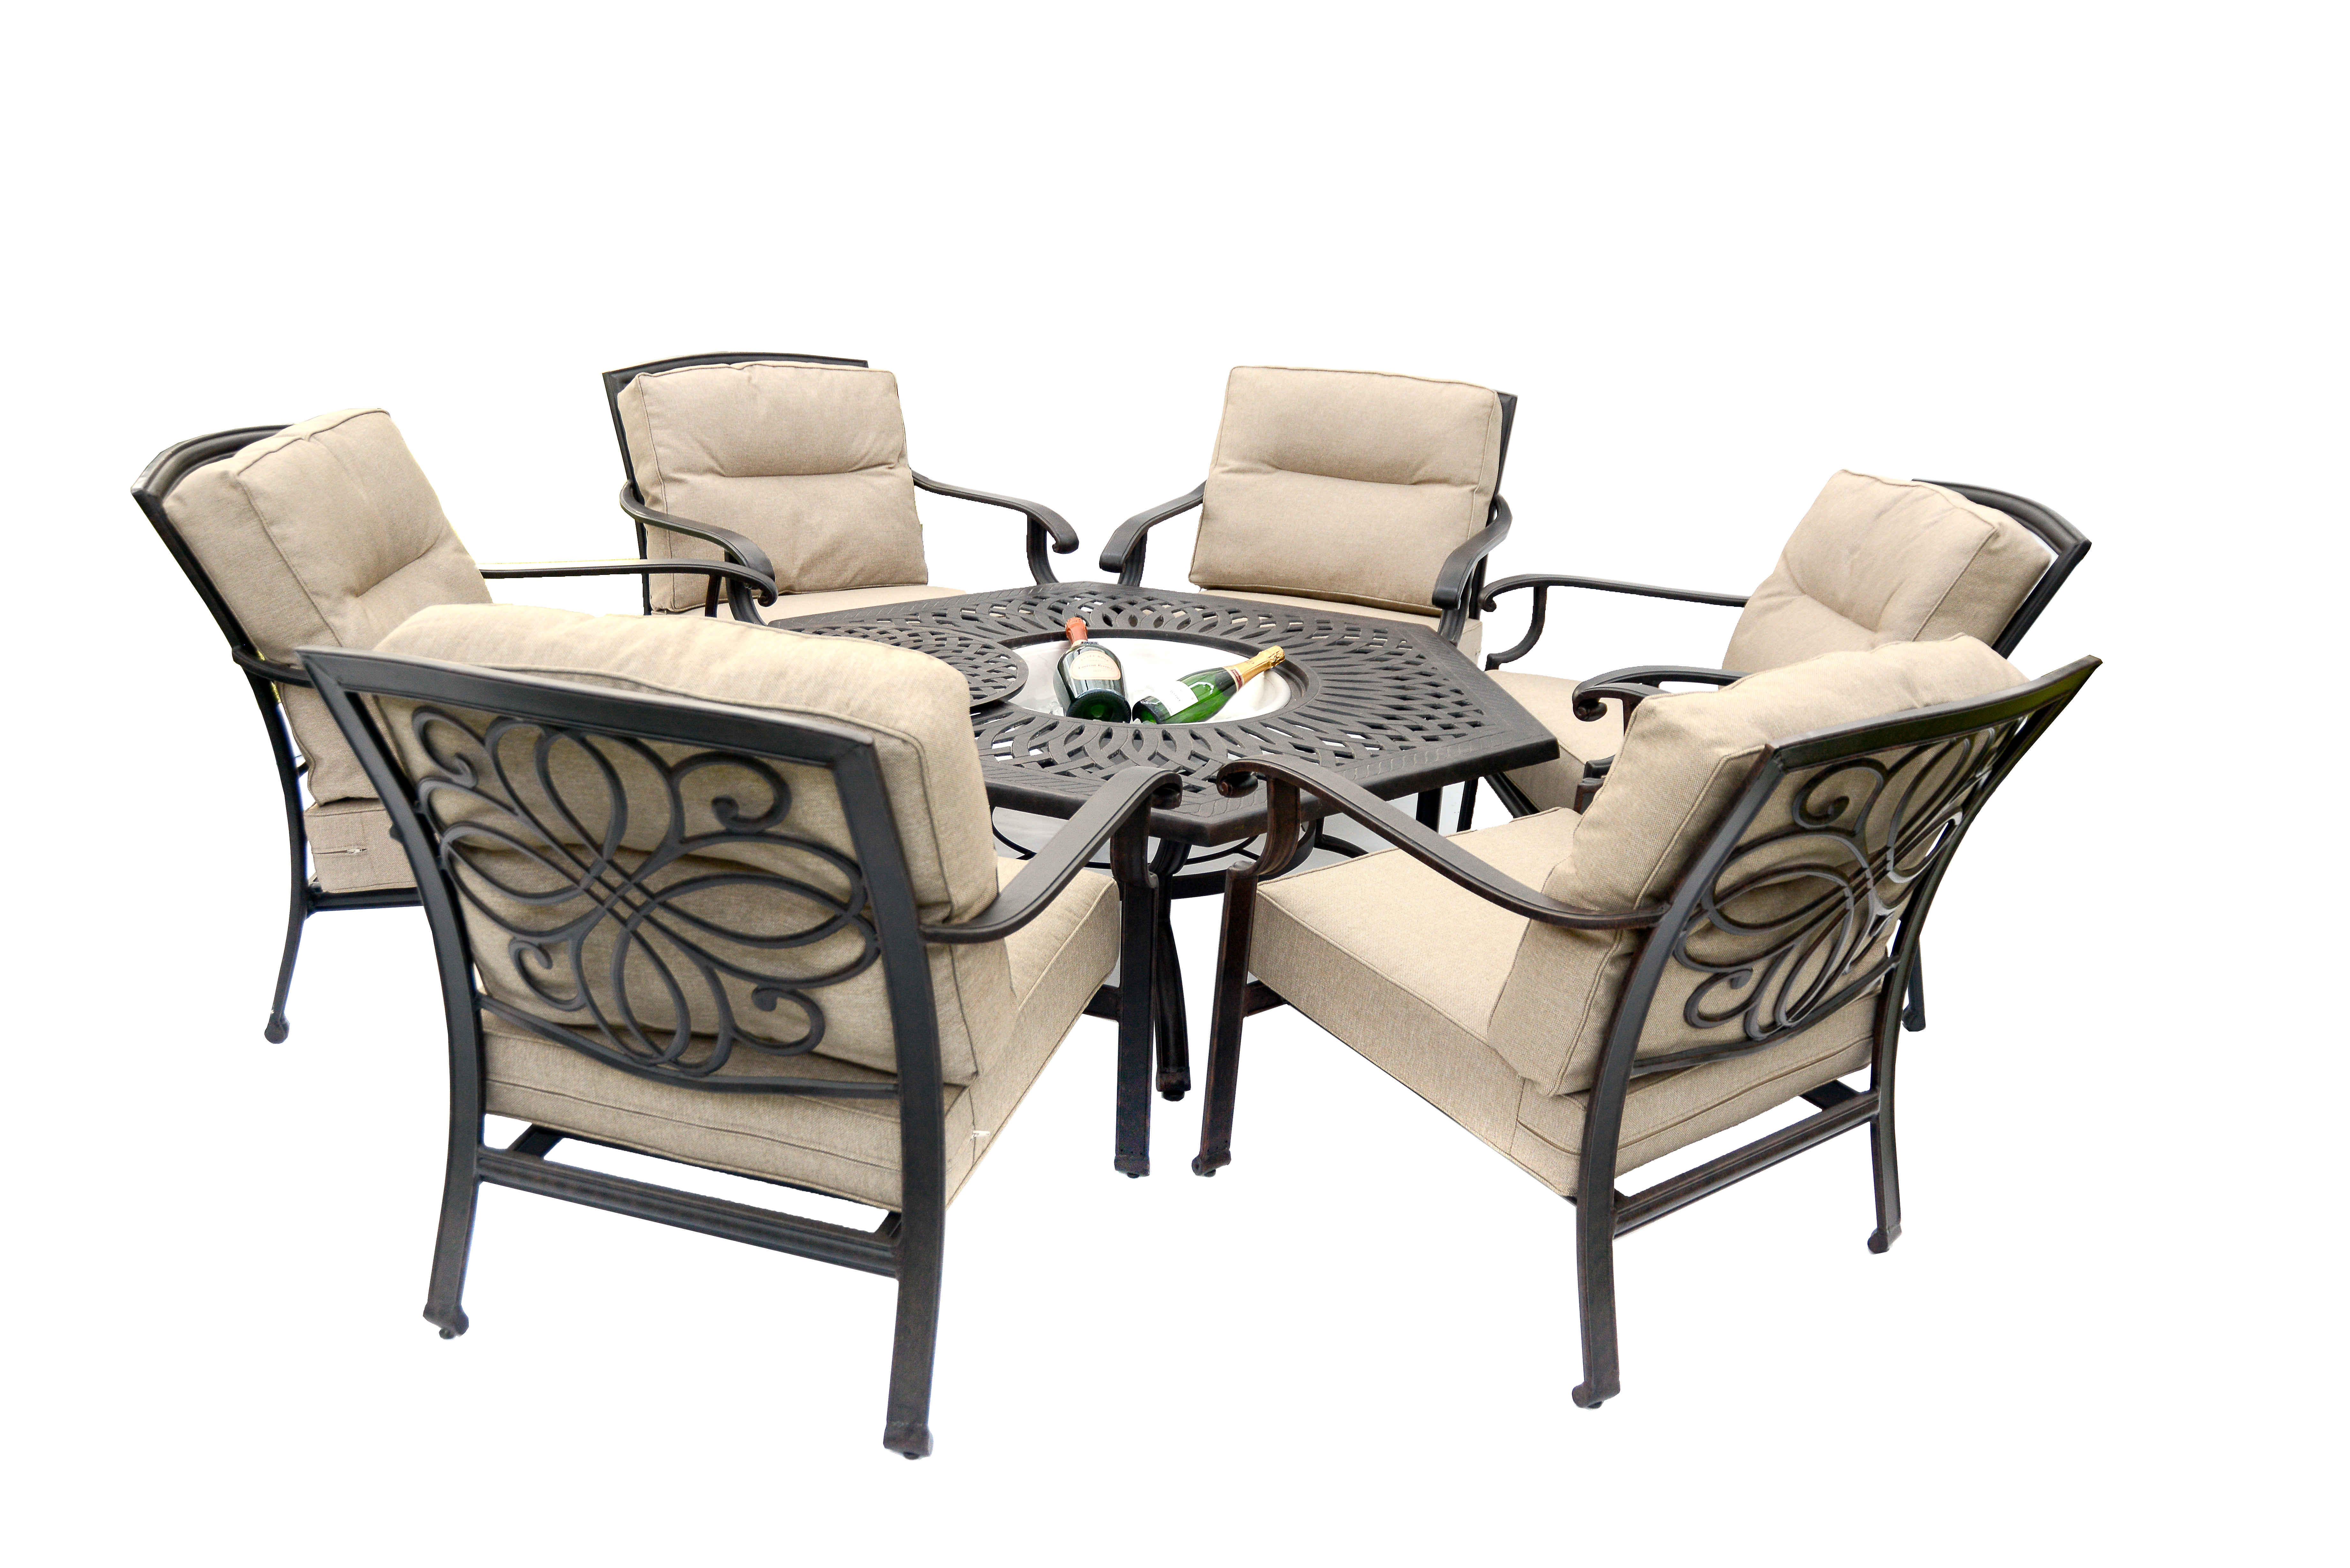 Gregg Wallace 6 Chair Hex Low Fire Pit Set